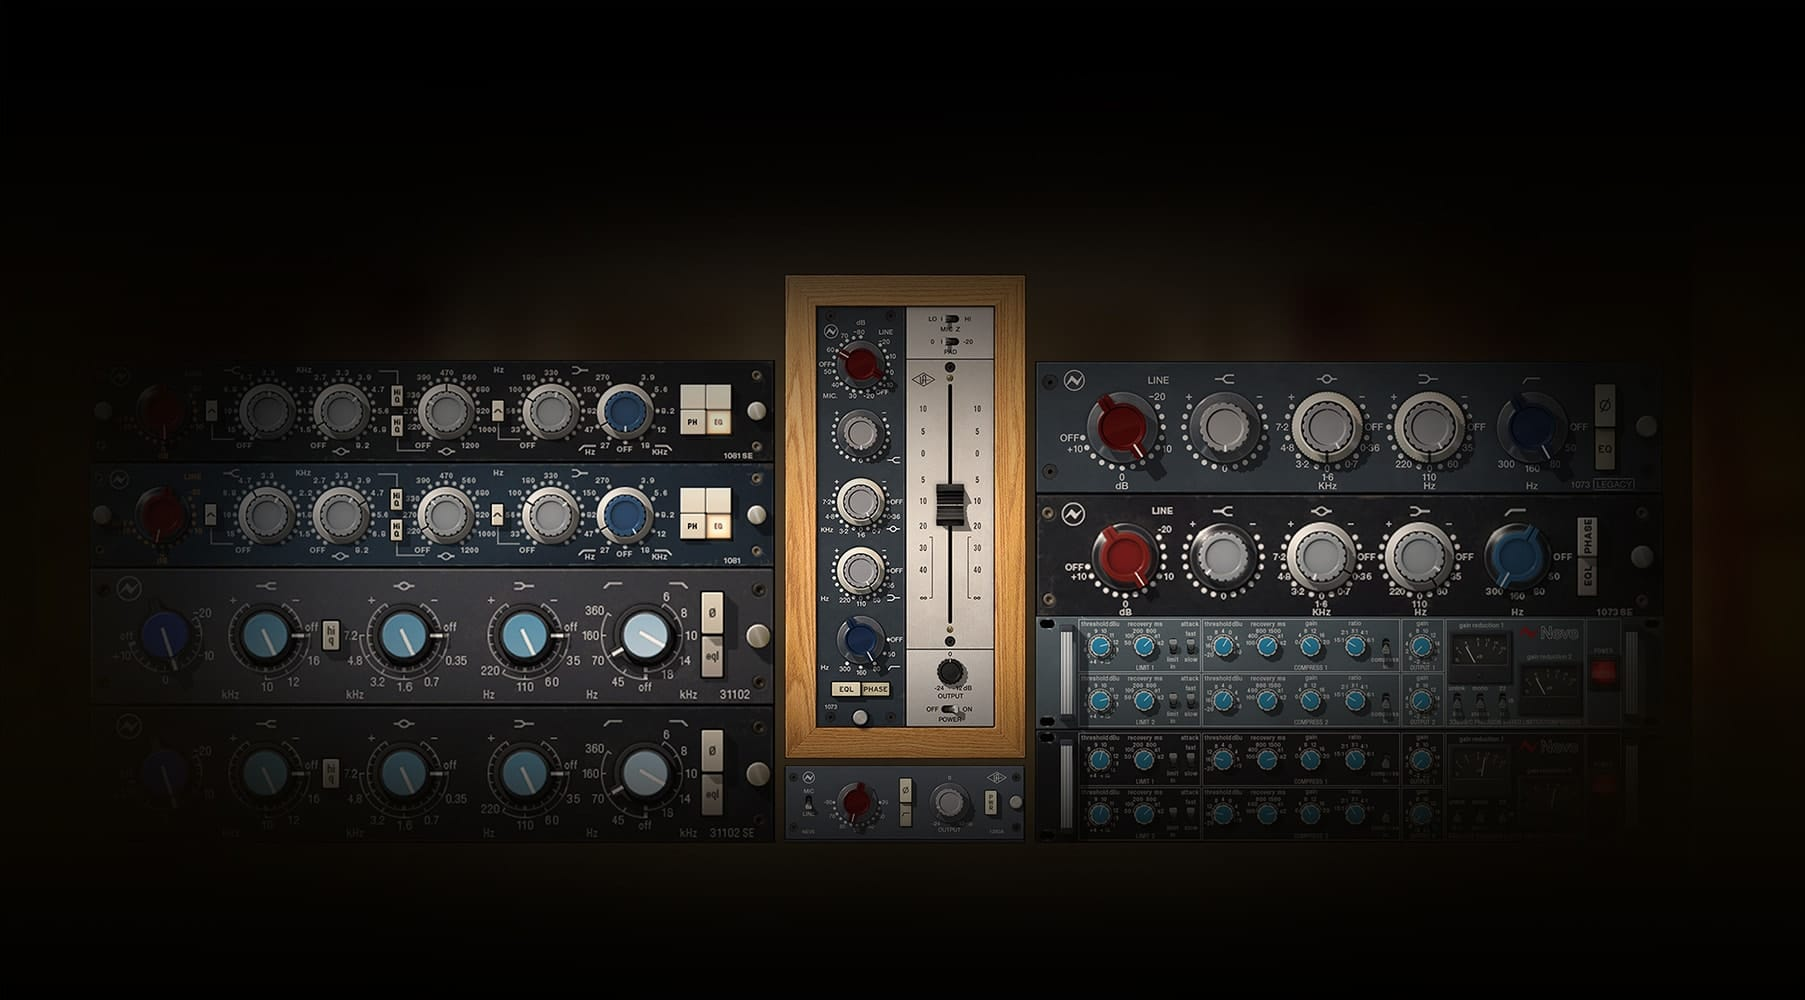 uad 2 plugins unlocked